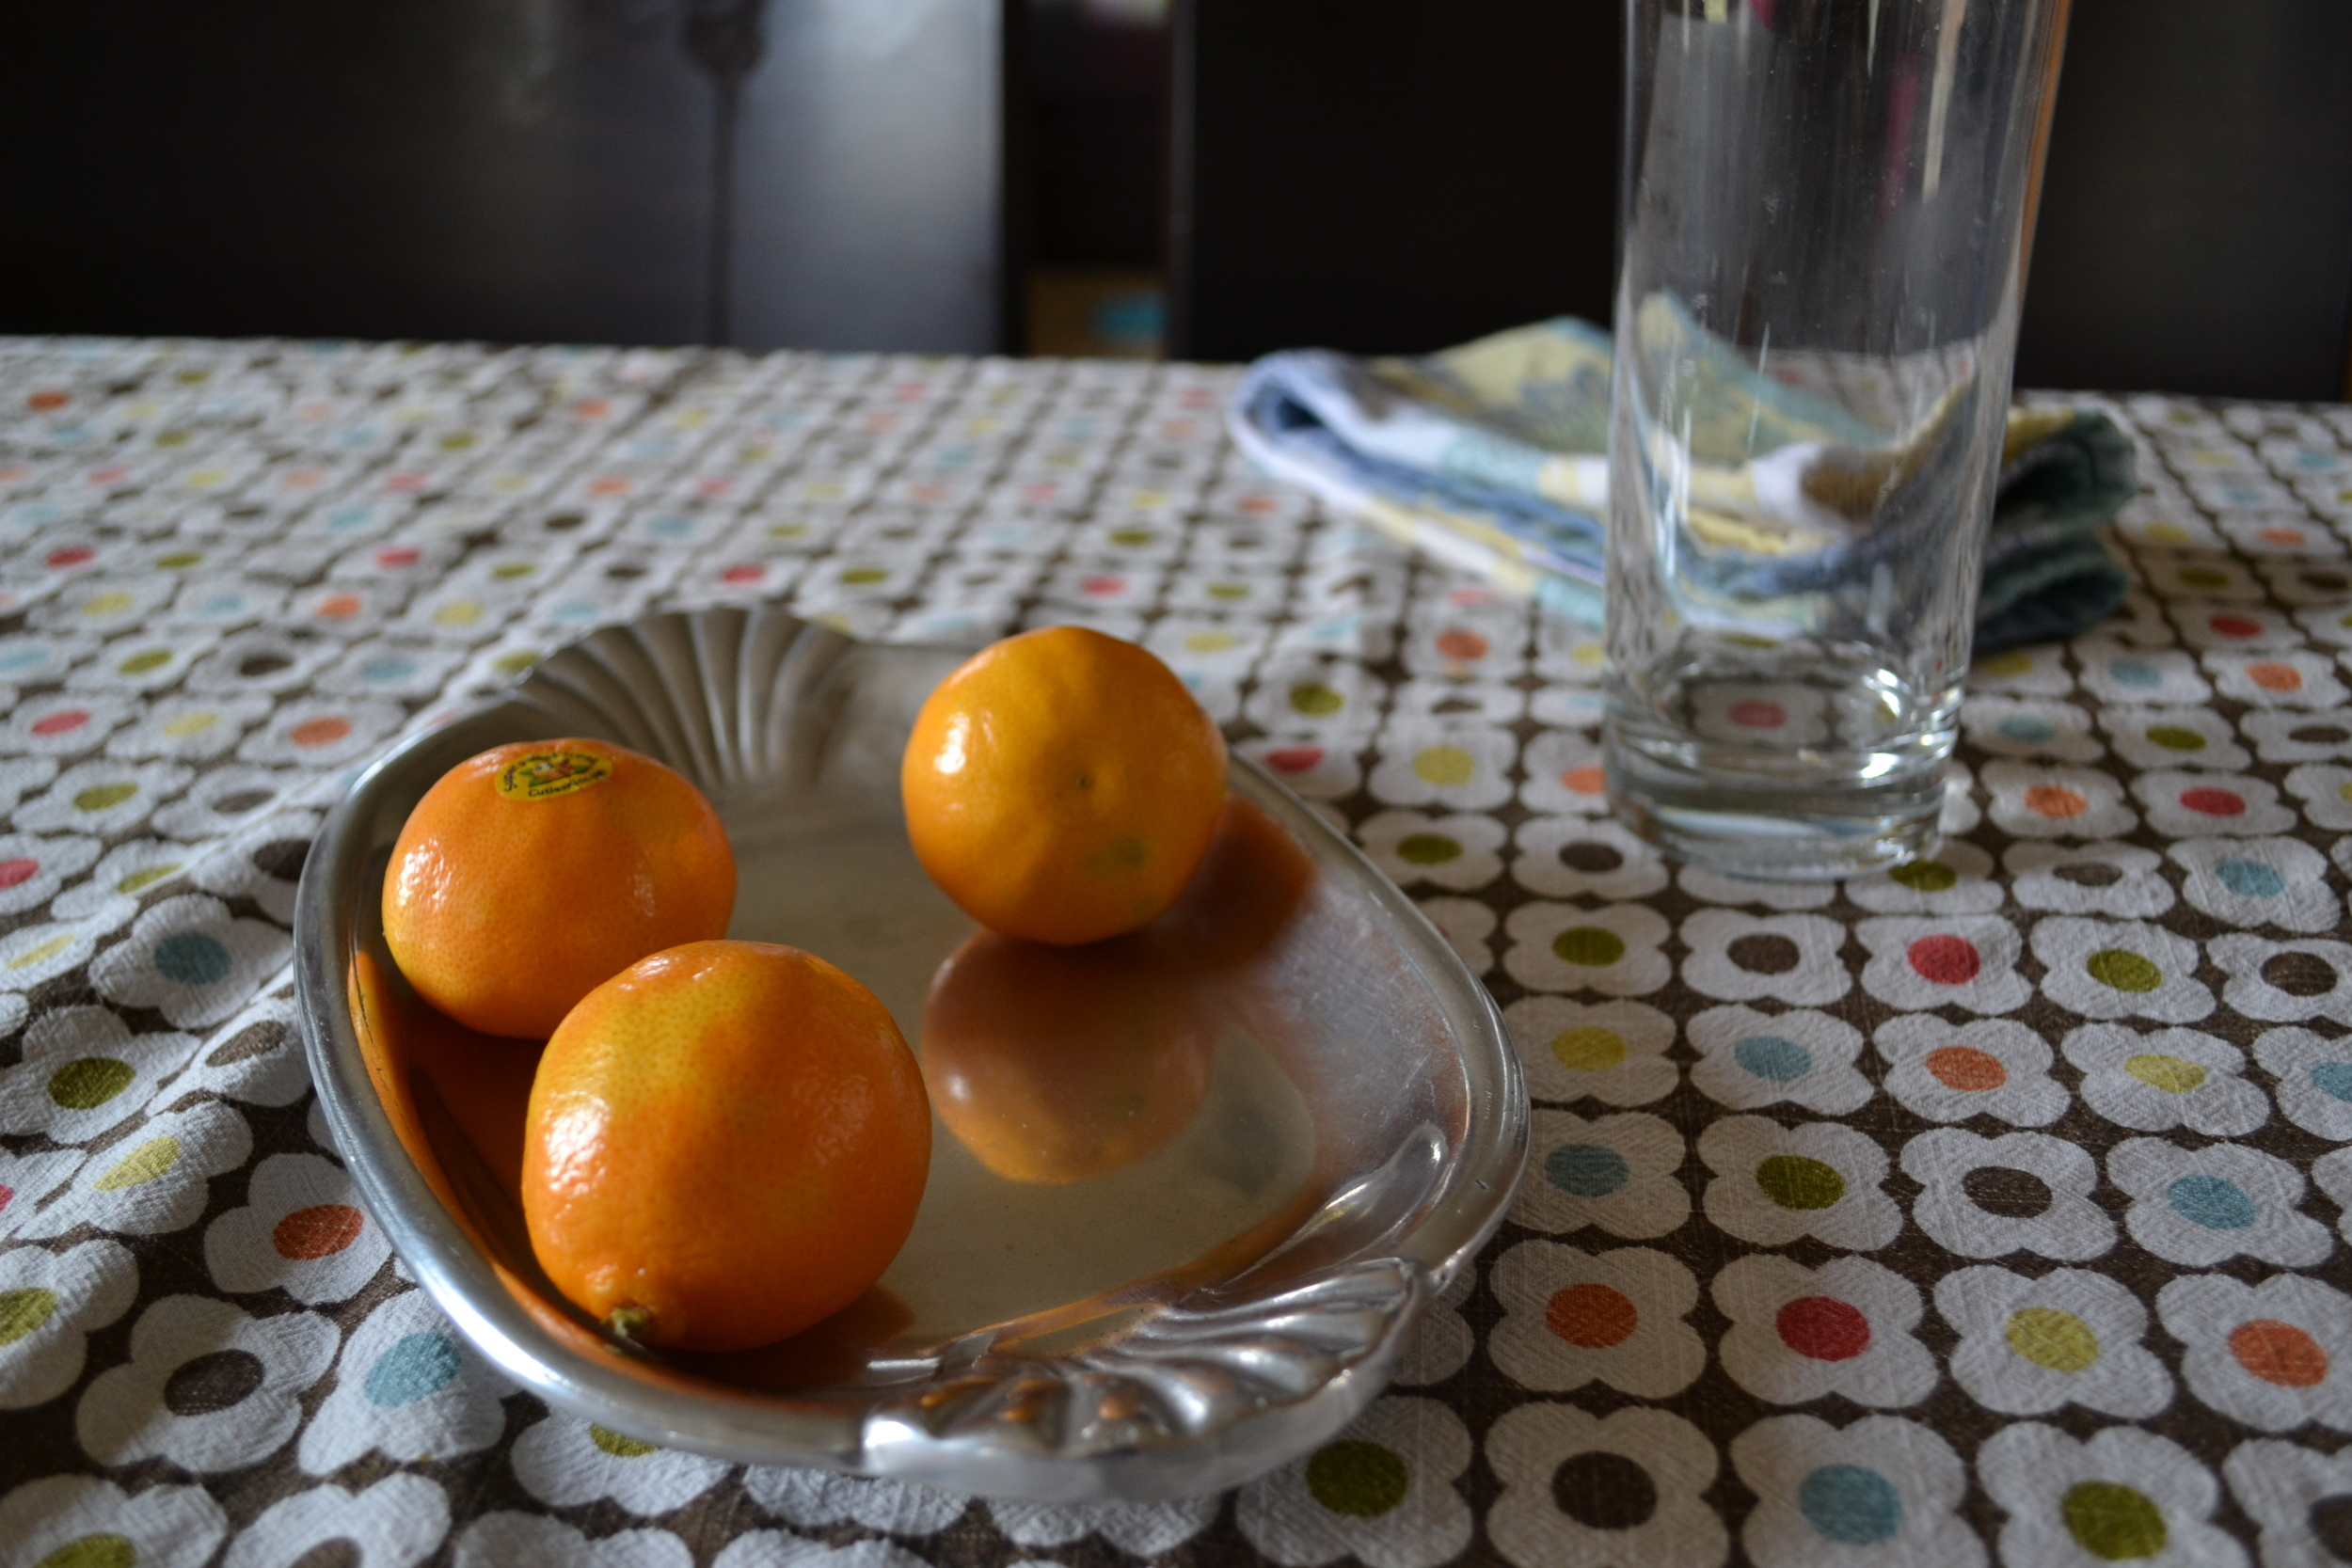 A silver dish of oranges